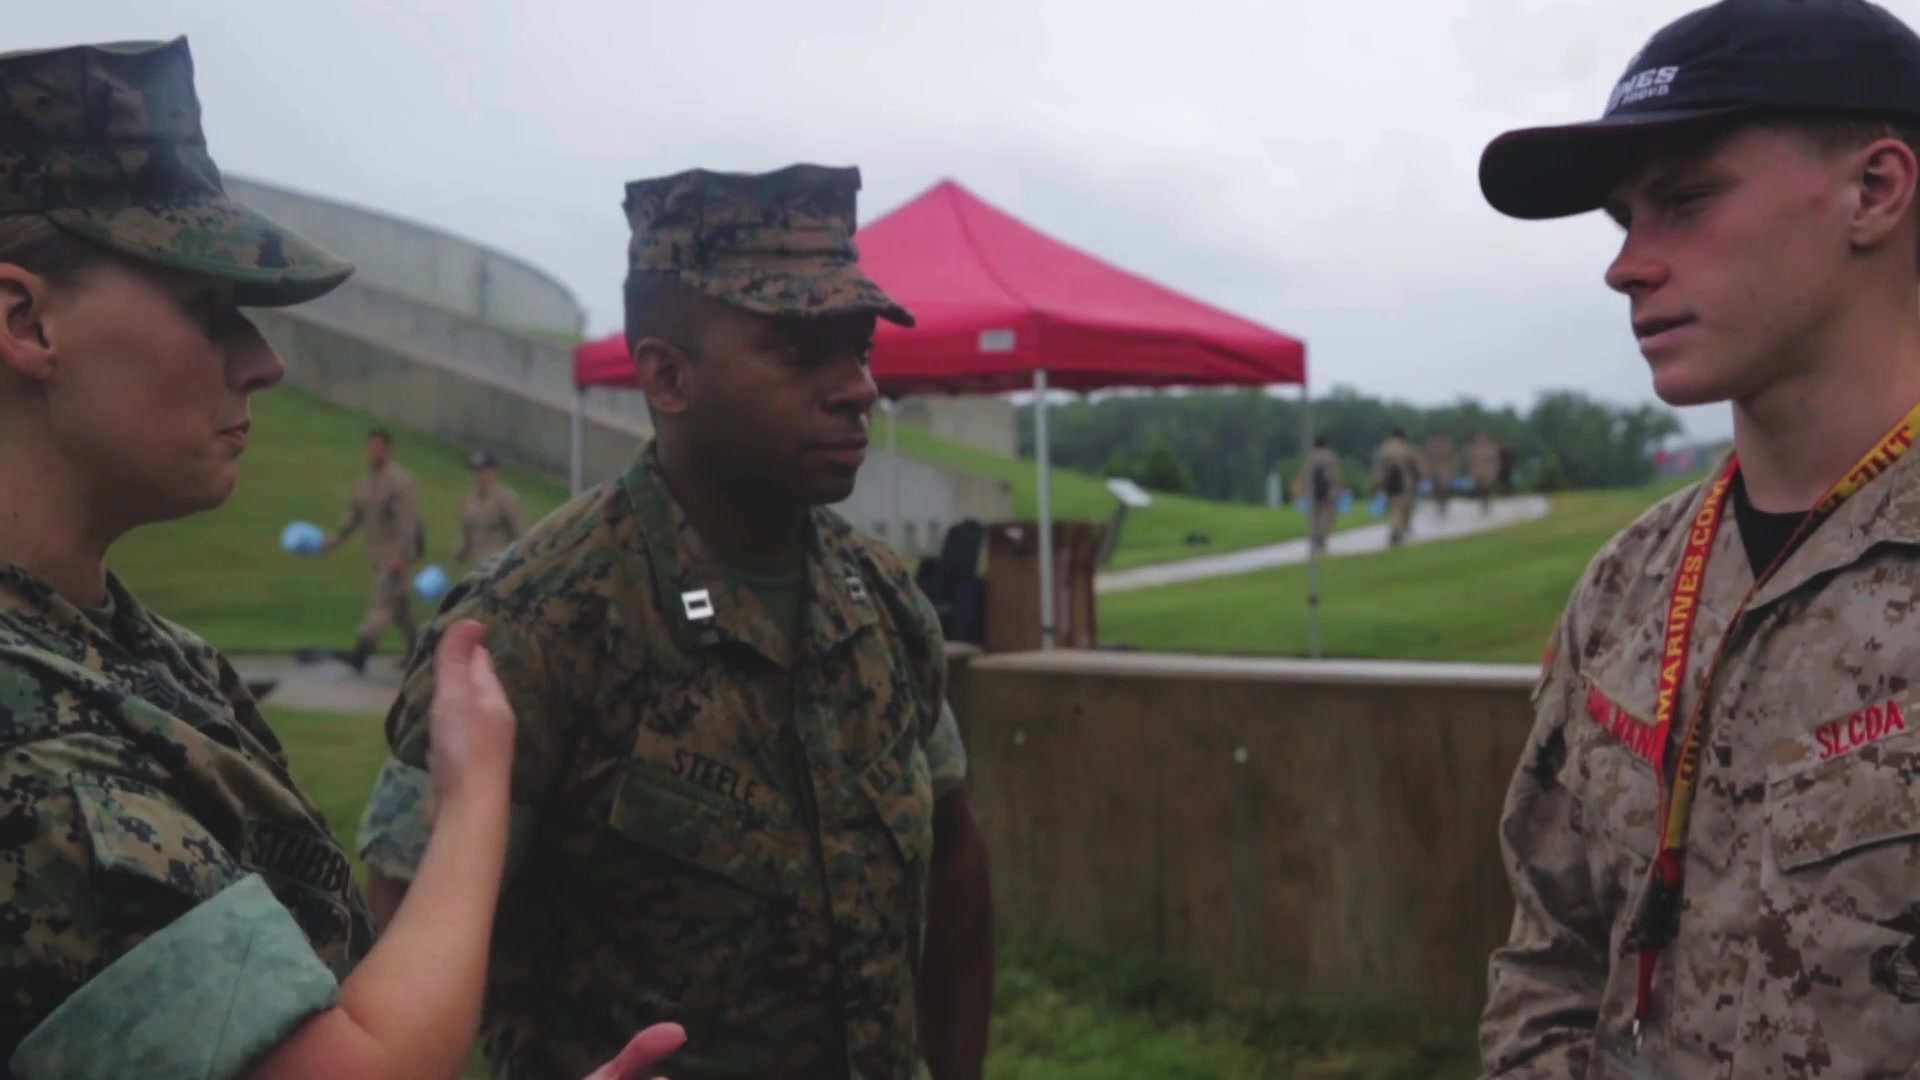 """Approximately 200 students graduated Marine Corps Recruiting Command's 2018 Summer Leadership and Character Development Academy (SLCDA) aboard Marine Corps Base Quantico, Virginia, July 22. The students were accepted into the academy, hand-selected by a board of Marines who look to find attendees with similar character traits as Marines, and spent a week aboard the base alongside dozens of Marines. Specifically, they conducted several physical fitness sessions, toured the National Mall in the District of Columbia, visited national museums and heard from guest speakers. They learned Marine Corps martial arts techniques and experienced Marine Barracks Washington's Sunset Parade featuring the iconic Silent Drill Platoon and the Commandant's Own Drum & Bugle Corps. Exposed to the culture of the Marine Corps, attendees participated in several leadership and character development classes that were oriented around Marine Corps leadership and ethics, based on knowledge passed down from one generation of military leaders to the next. They also visited Officer Candidates School, where attendees maneuvered across an obstacle course and learned what it takes to become a Marine officer. Inspired by the Marine Corps' third promise of developing quality citizens, the program was designed to challenge and develop the nation's top-performing high school students so they could return to their communities more confident, selfless and better equipped to improve the lives of those around them. """"Not everyone who wanted to be here, got the chance,"""" said Maj. Gen. James Bierman, the commanding general of MCRC. """"We had more than 800 applications, and we would have liked to take all of them, but there wasn't enough capacity for everybody, so we had to make choices … all of you here today stood out among your peers. The reason why we picked all of you comes from the tangible and intangible; it was your potential that attracted us to you. All of you have the chance to go out and do something g"""